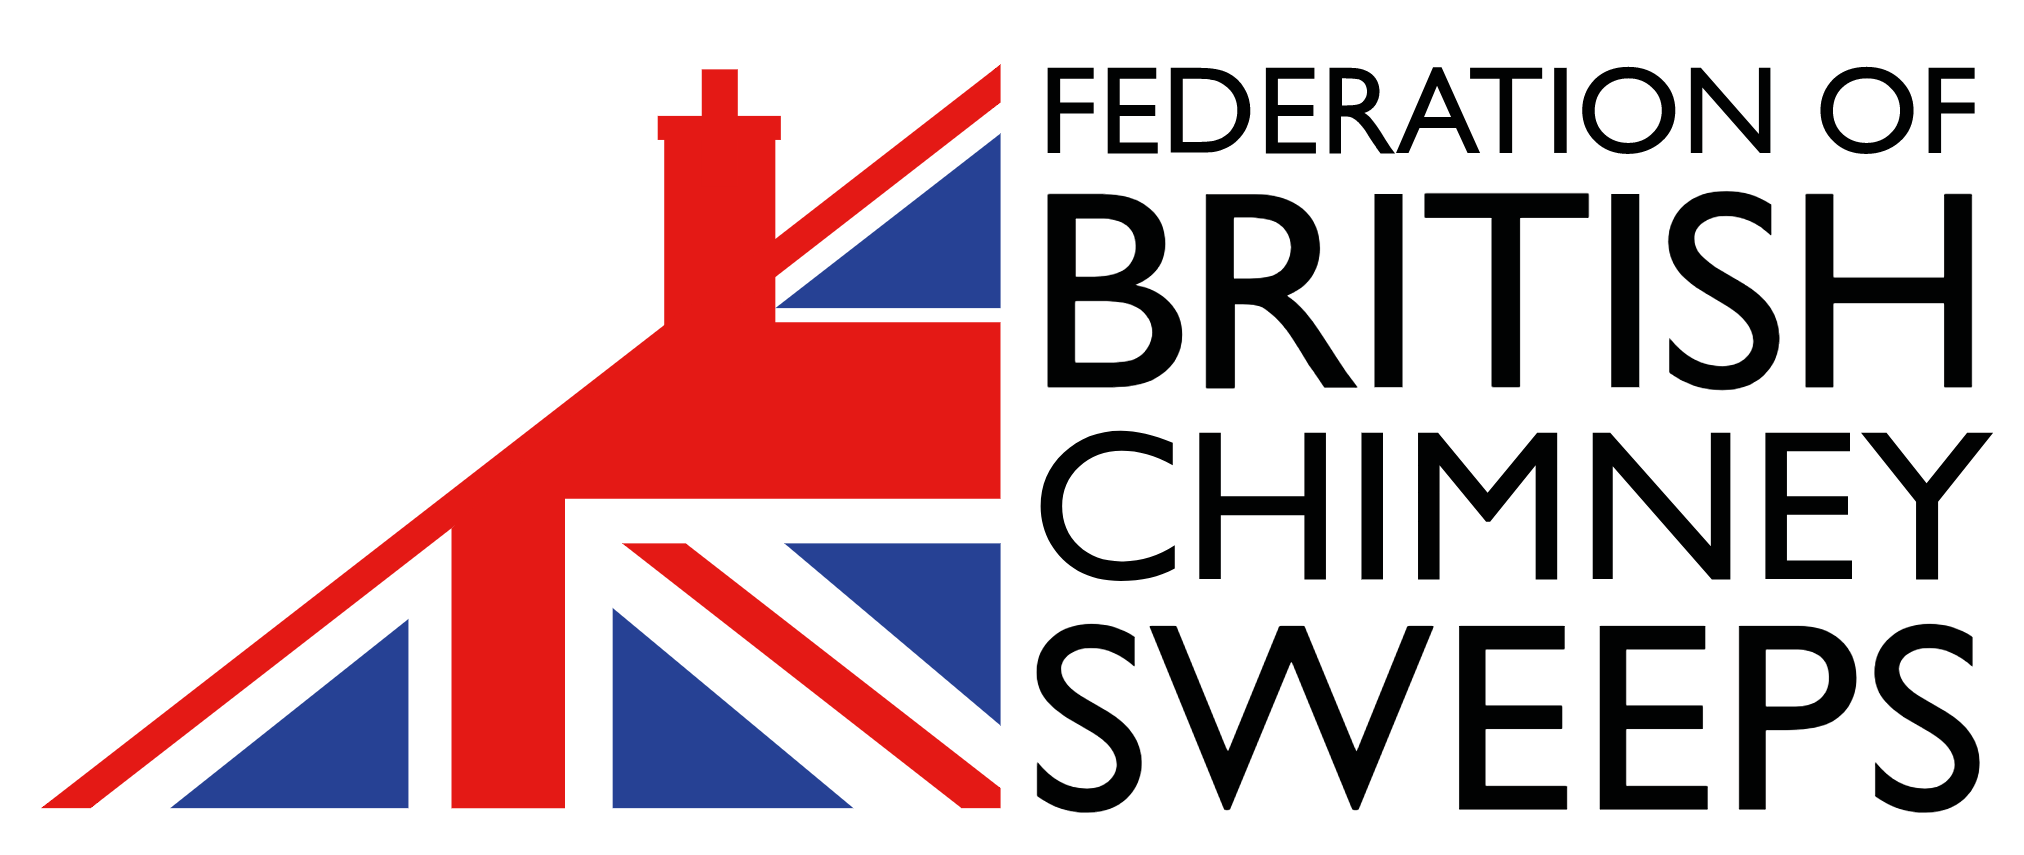 Federation of Britain Chimney Sweeps logo